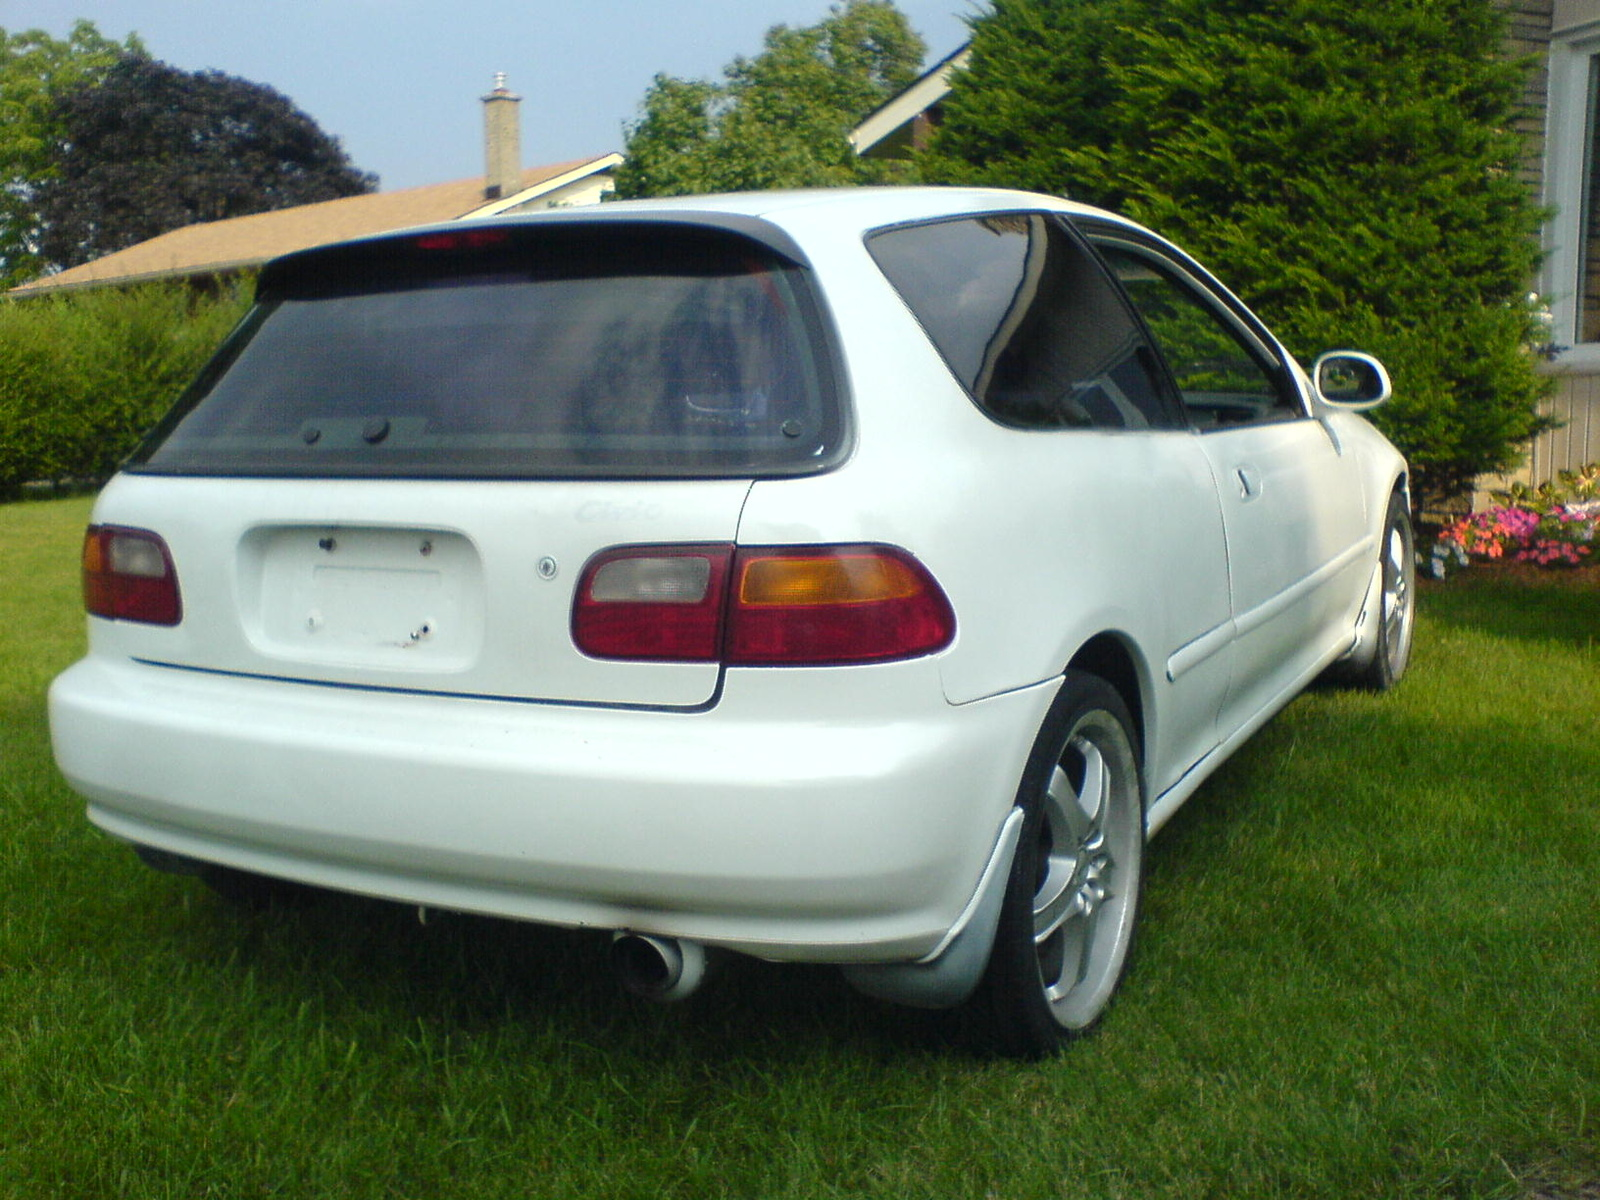 1993 honda civic hatchback - photo #10